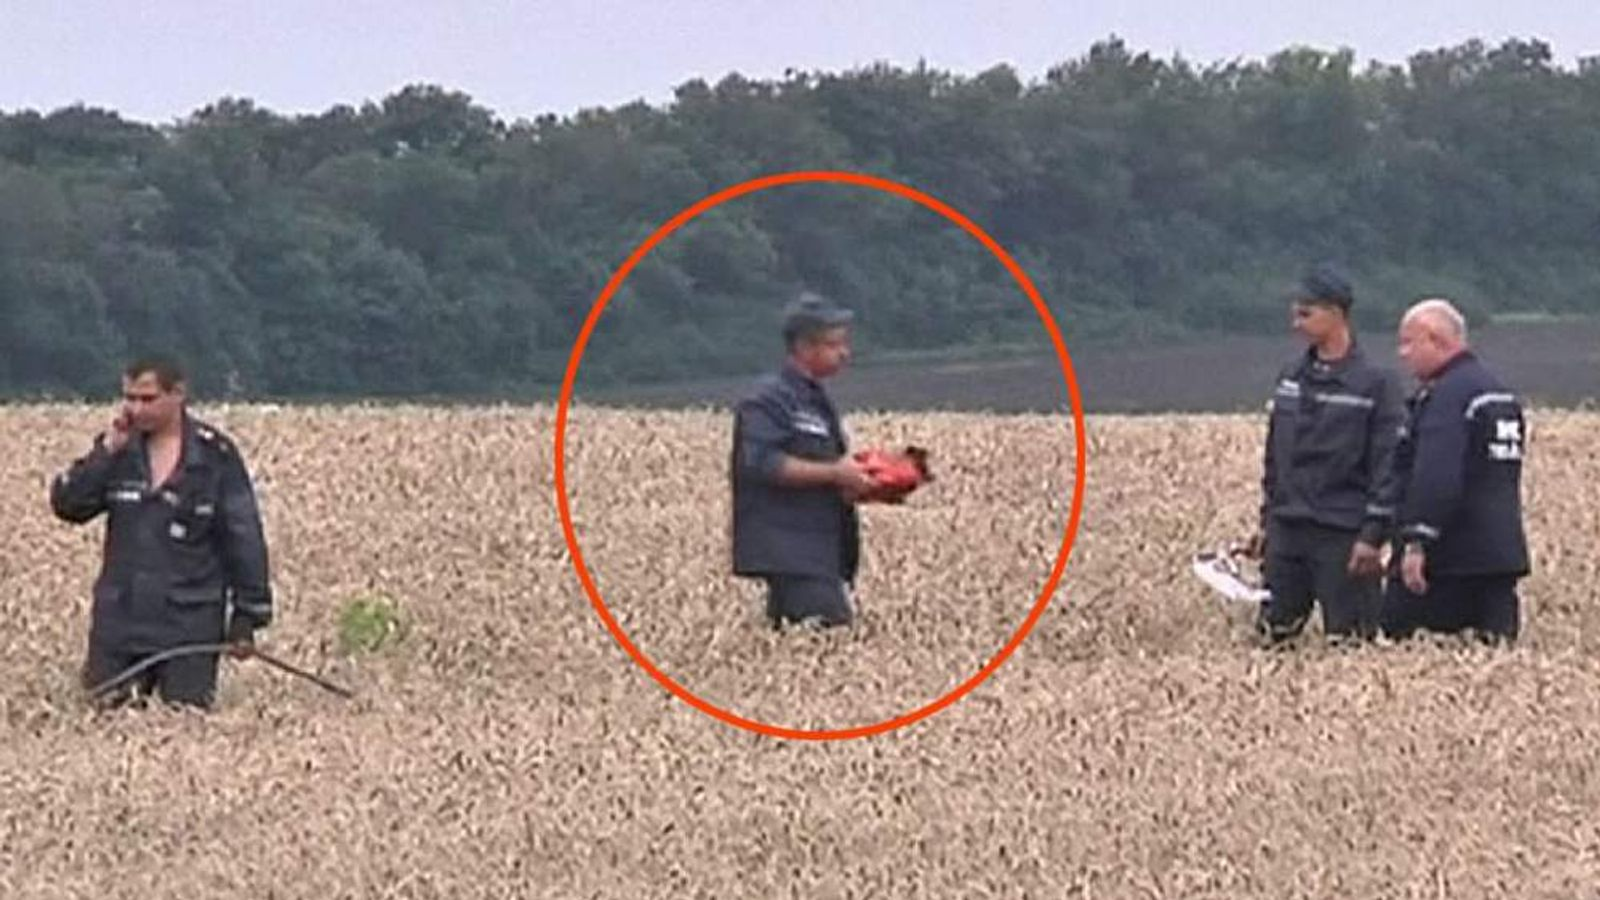 A flight recorder being taken away from a plane crash site